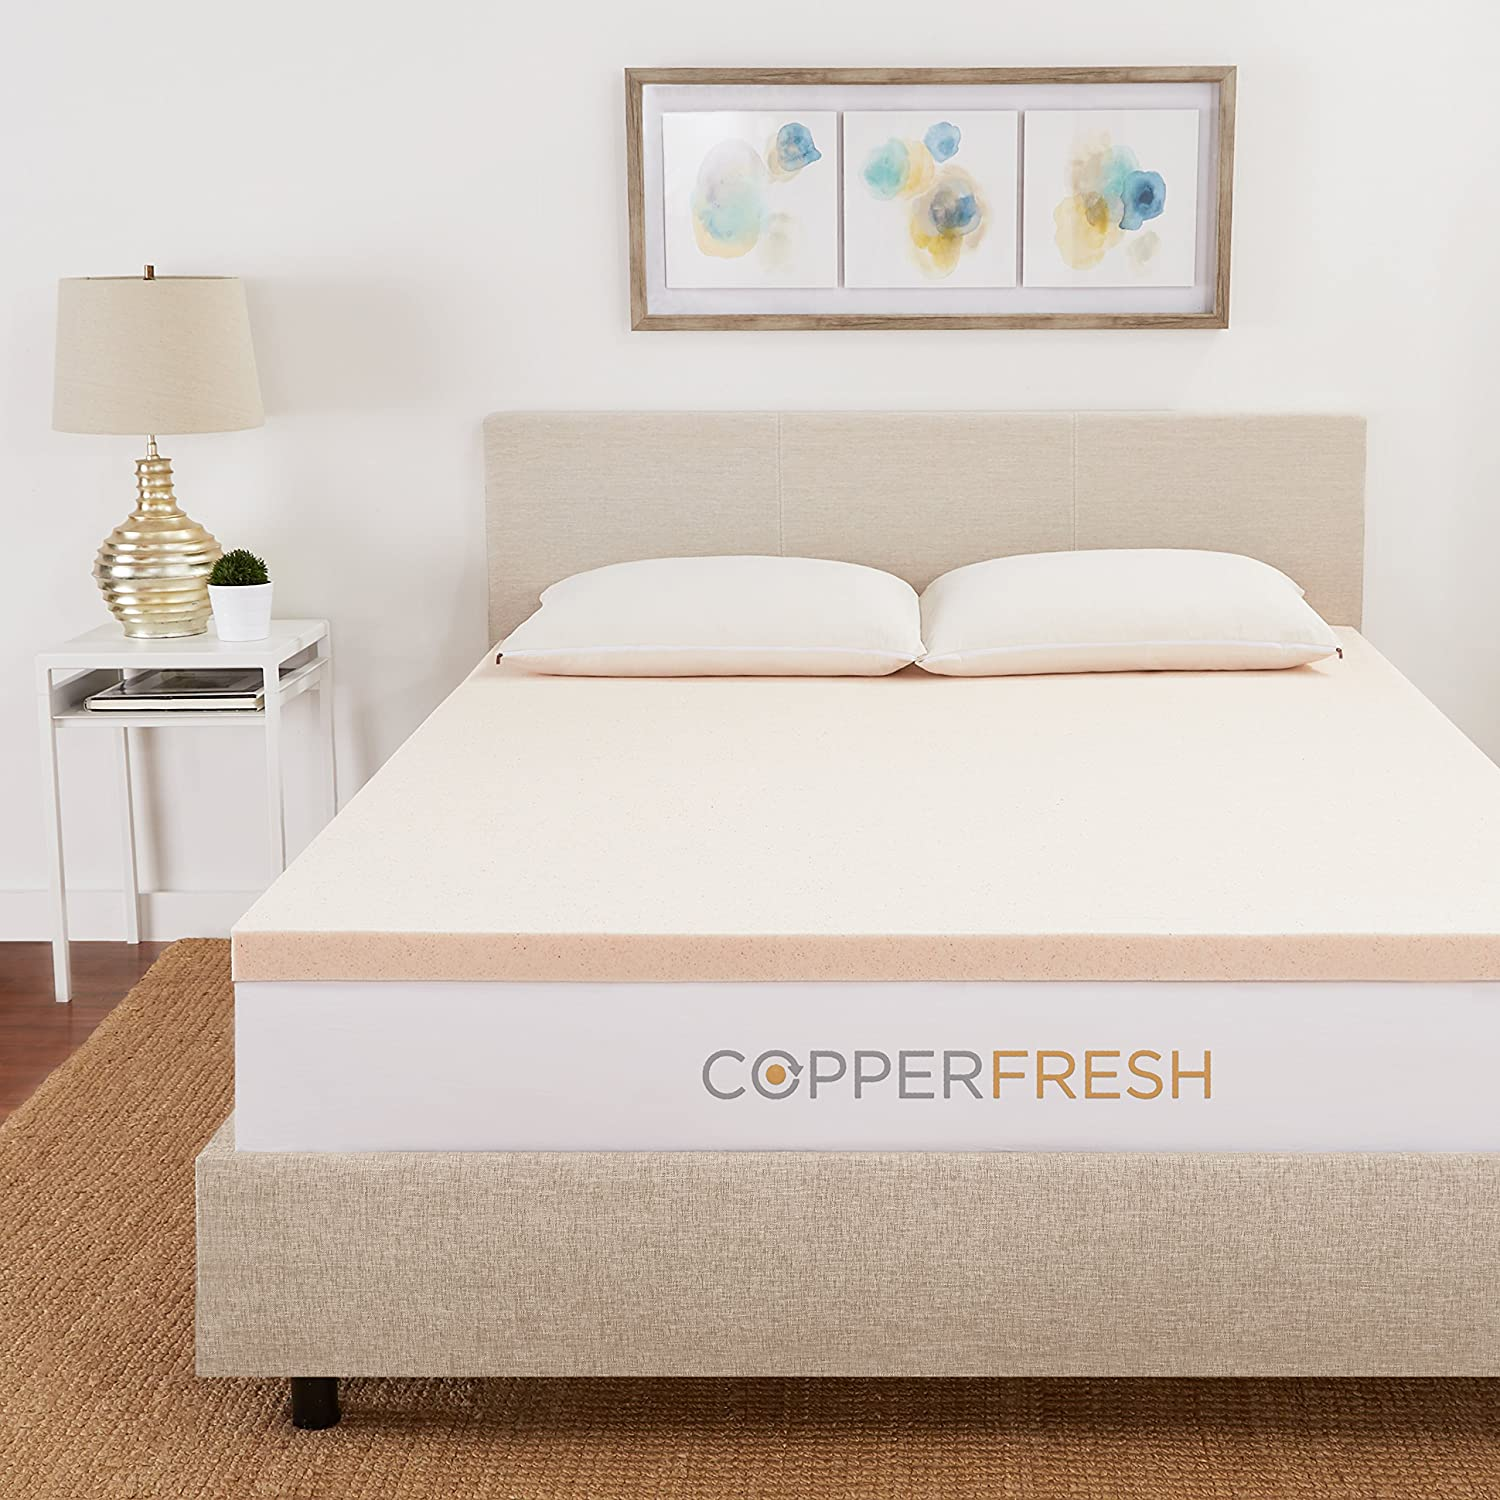 CopperFresh Gel Memory Foam Mattress Topper by Sleep Studio, Naturally Antimicrobial and Cool, Made in The USA - 2-Inches, Queen Size